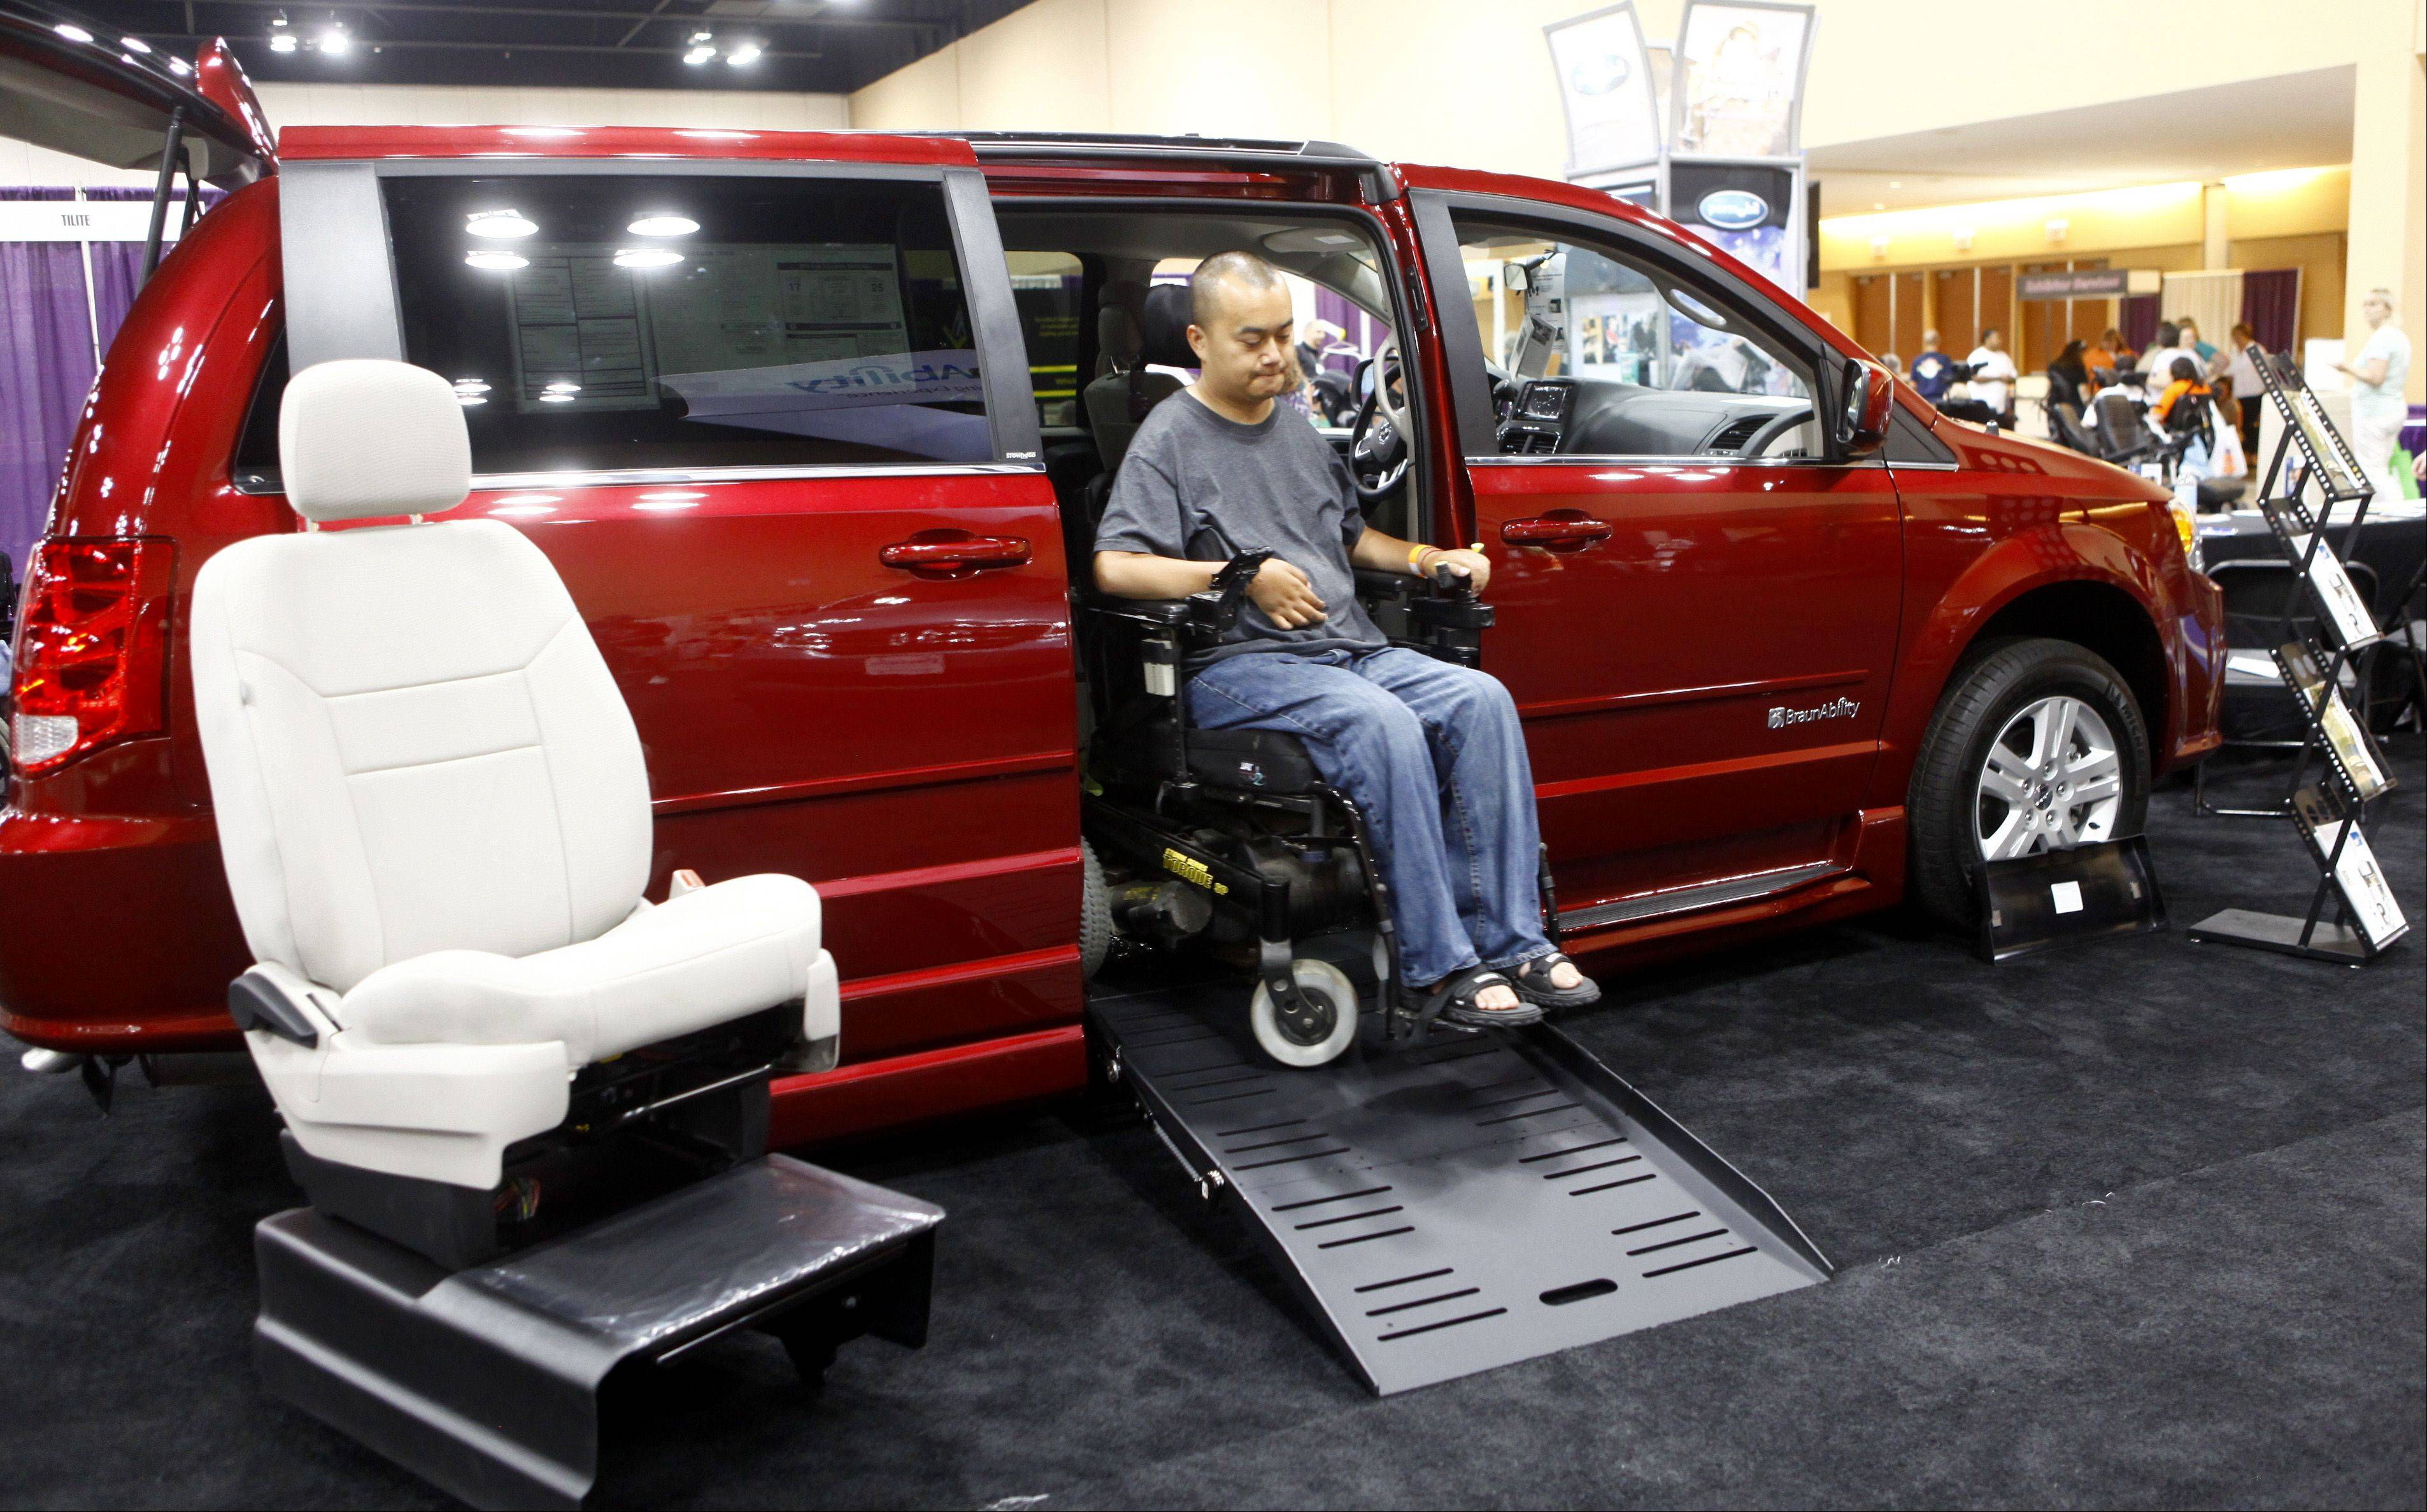 Blong Moua, of Madison, Wis, tries out one the many wheelchair accessible vans that were on display at the annual Abilities Expo on Sunday at the Schaumburg convention center.